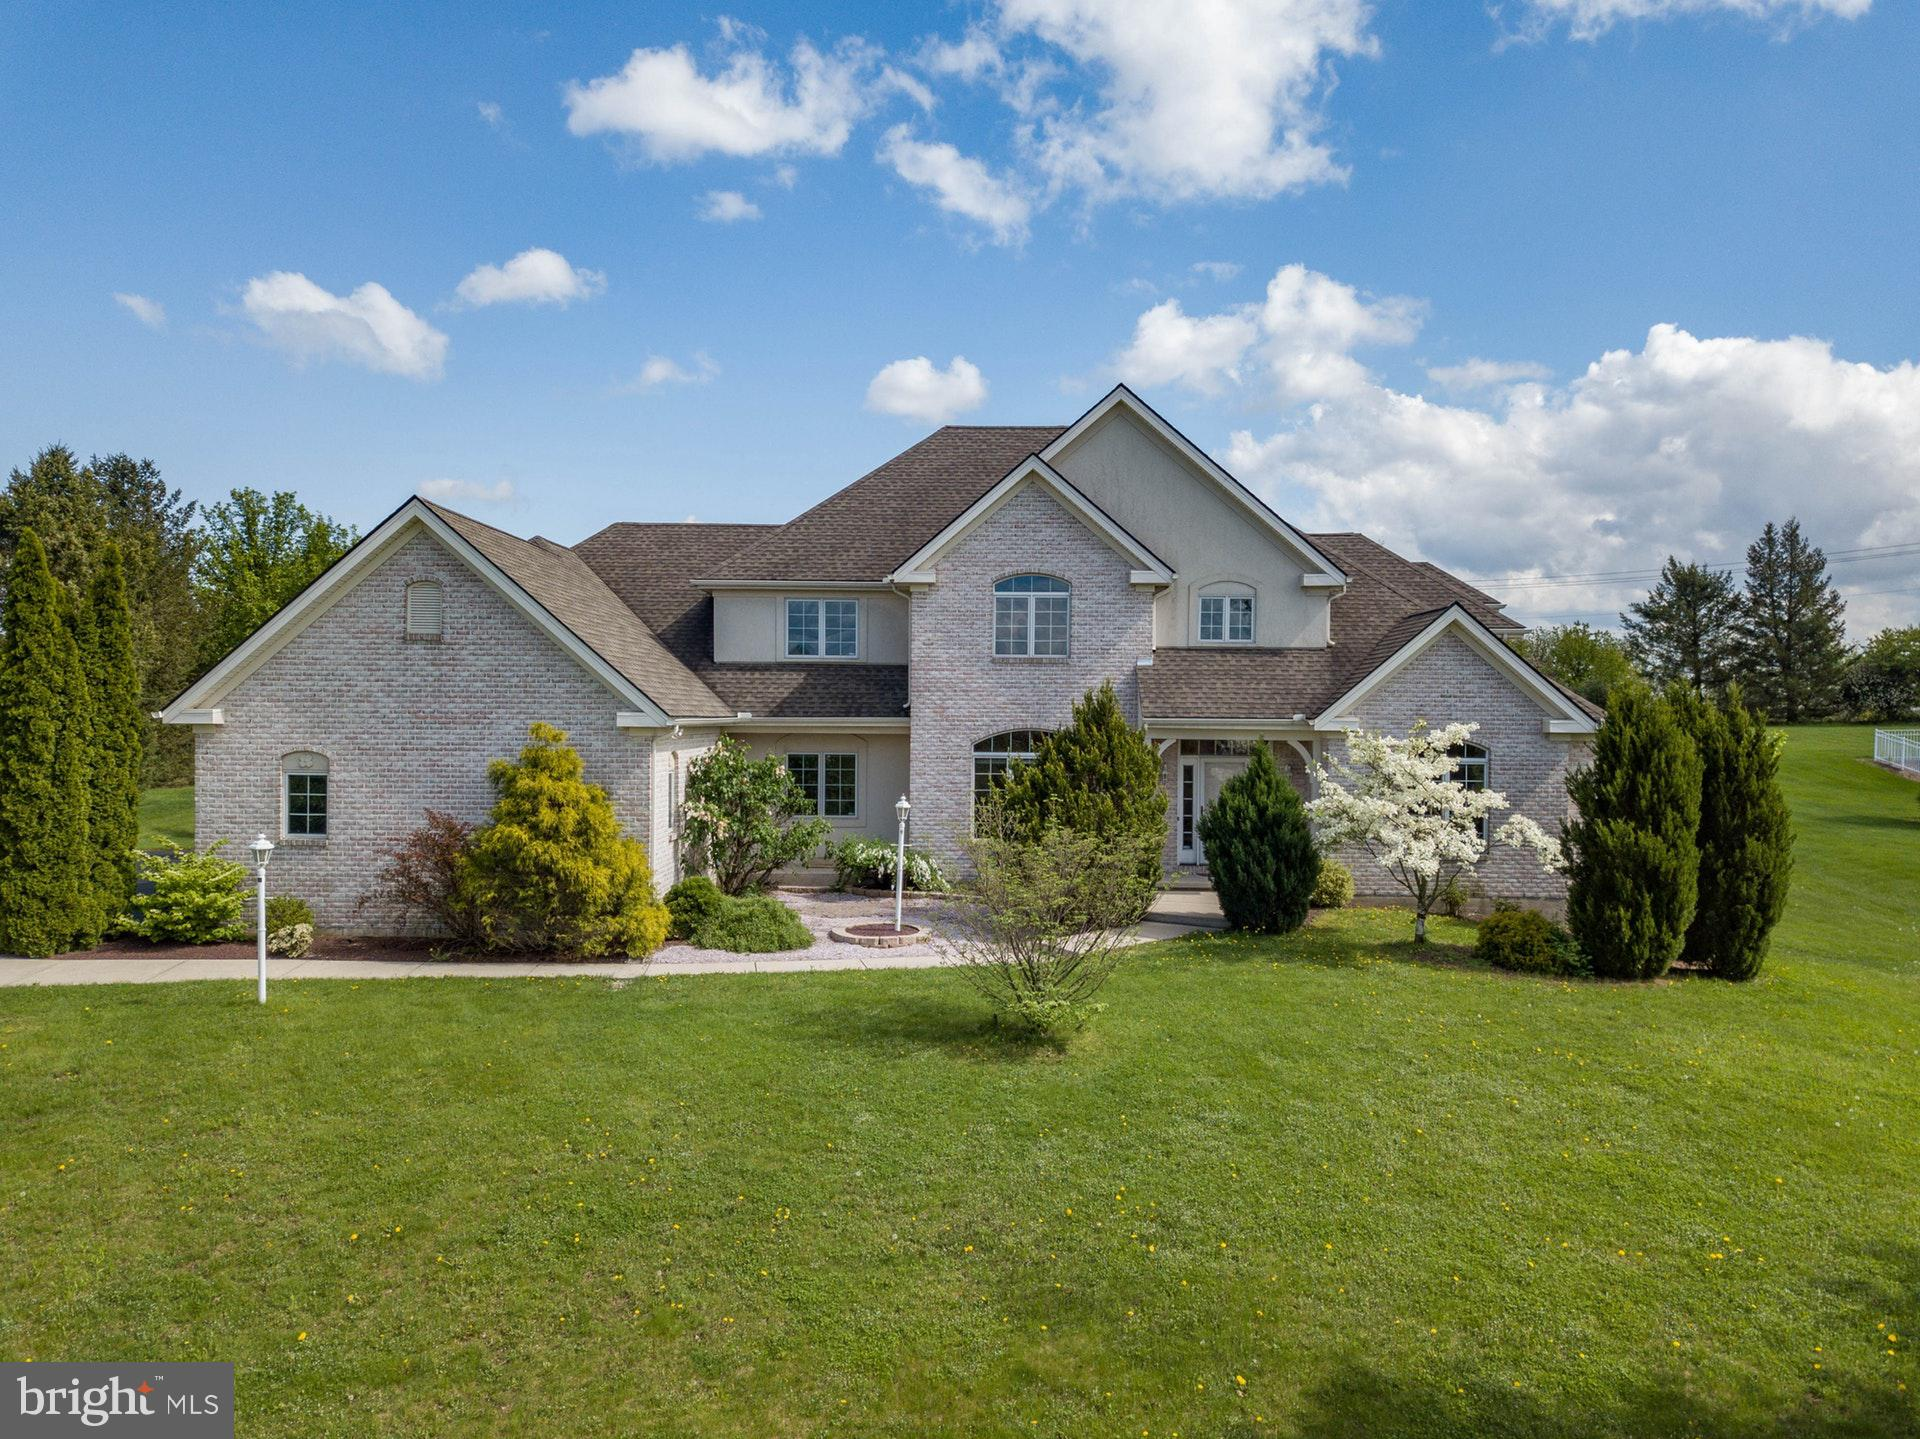 1732 CREEK VIEW DRIVE, FOGELSVILLE, PA 18051